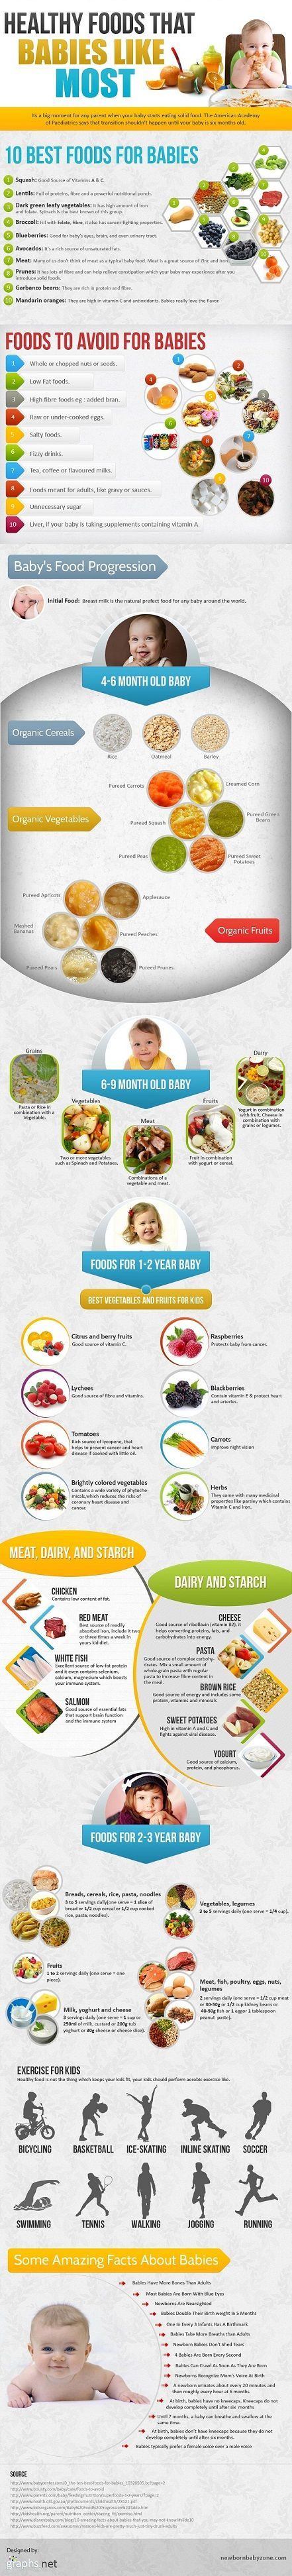 Healthy-Foods-That-Babies-L